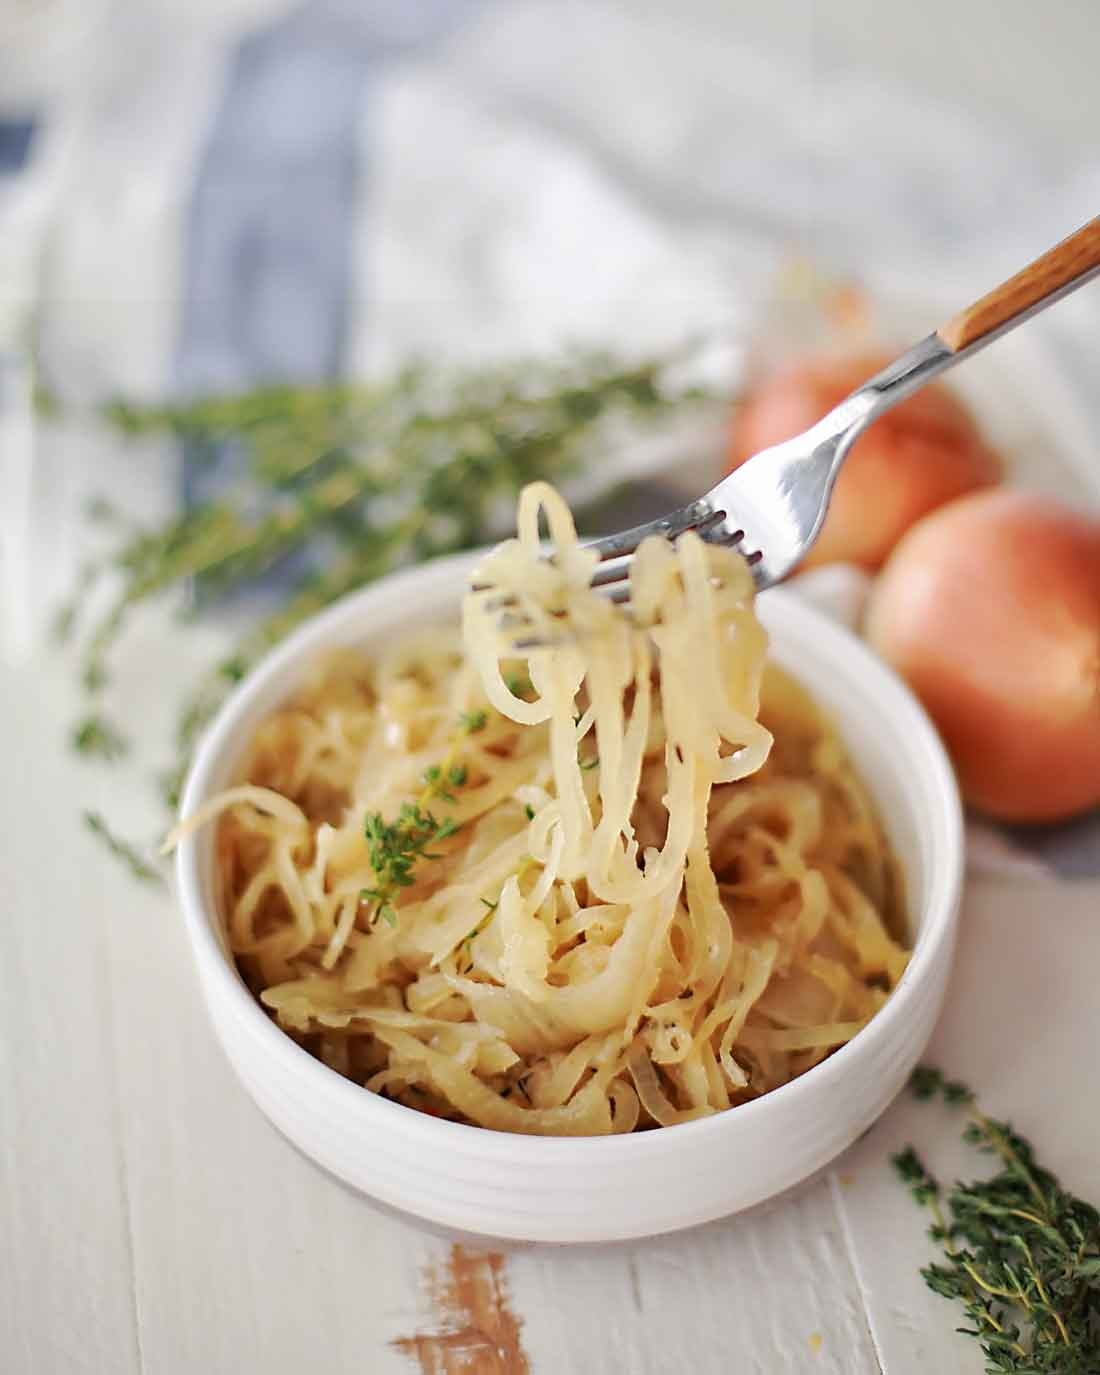 melted onions make everything taste better. Awesome recipe for crockpot melted onions!